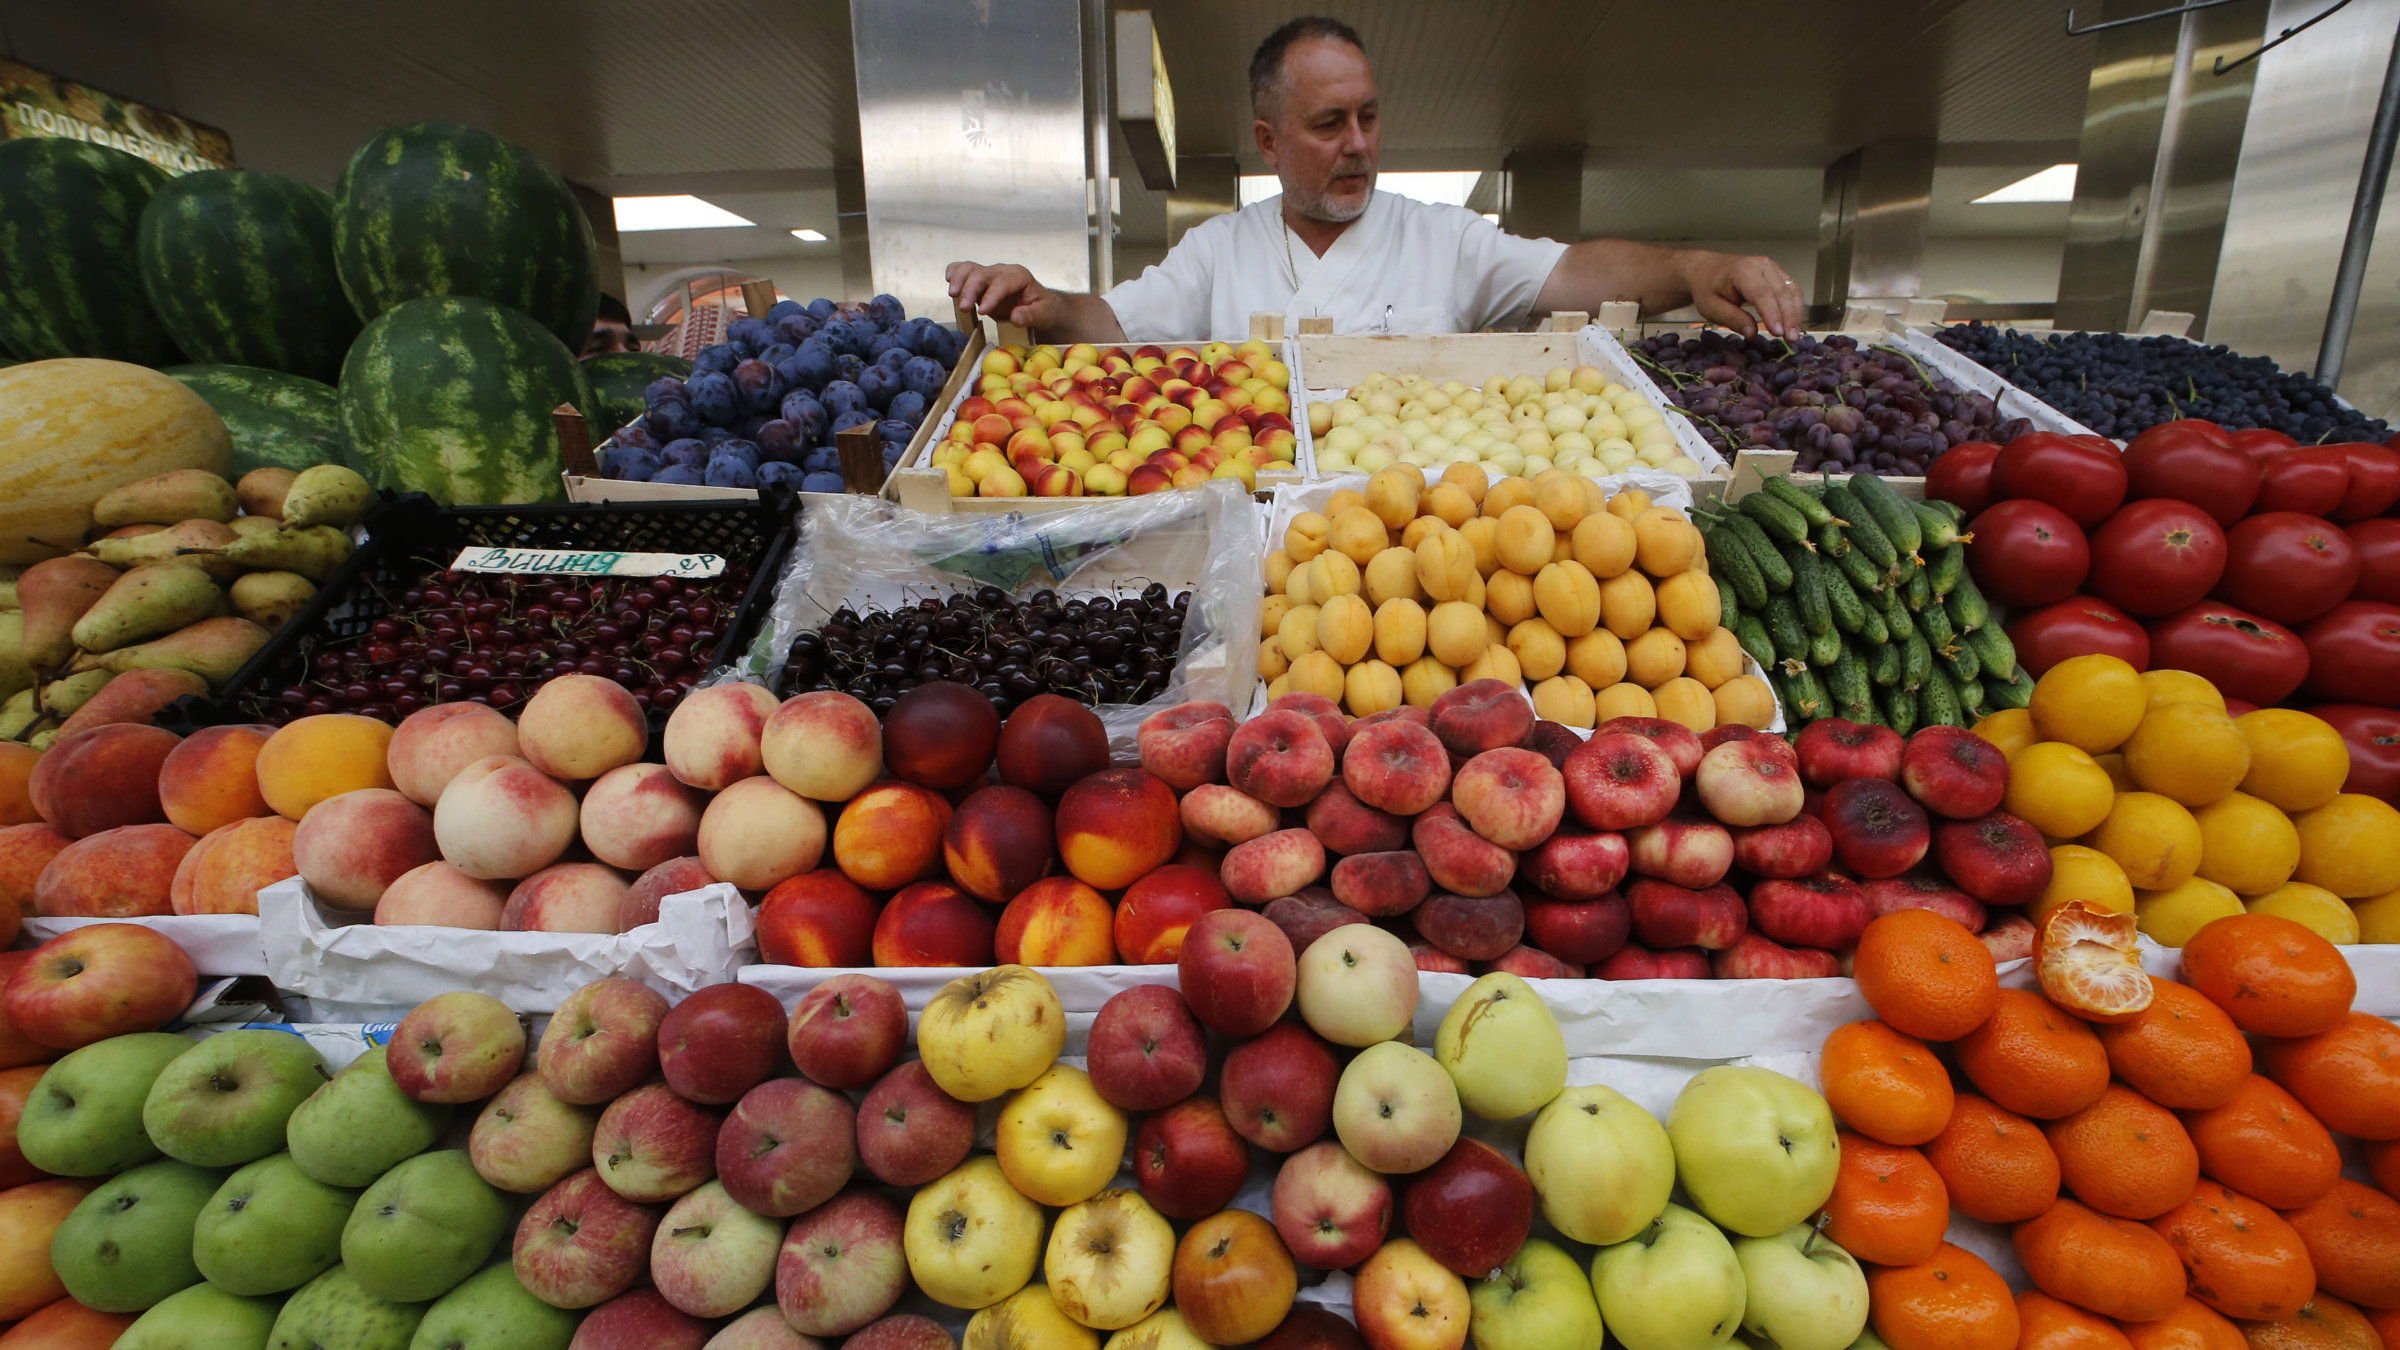 A vendor sells vegetables and fruits at the city market in St. Petersburg.